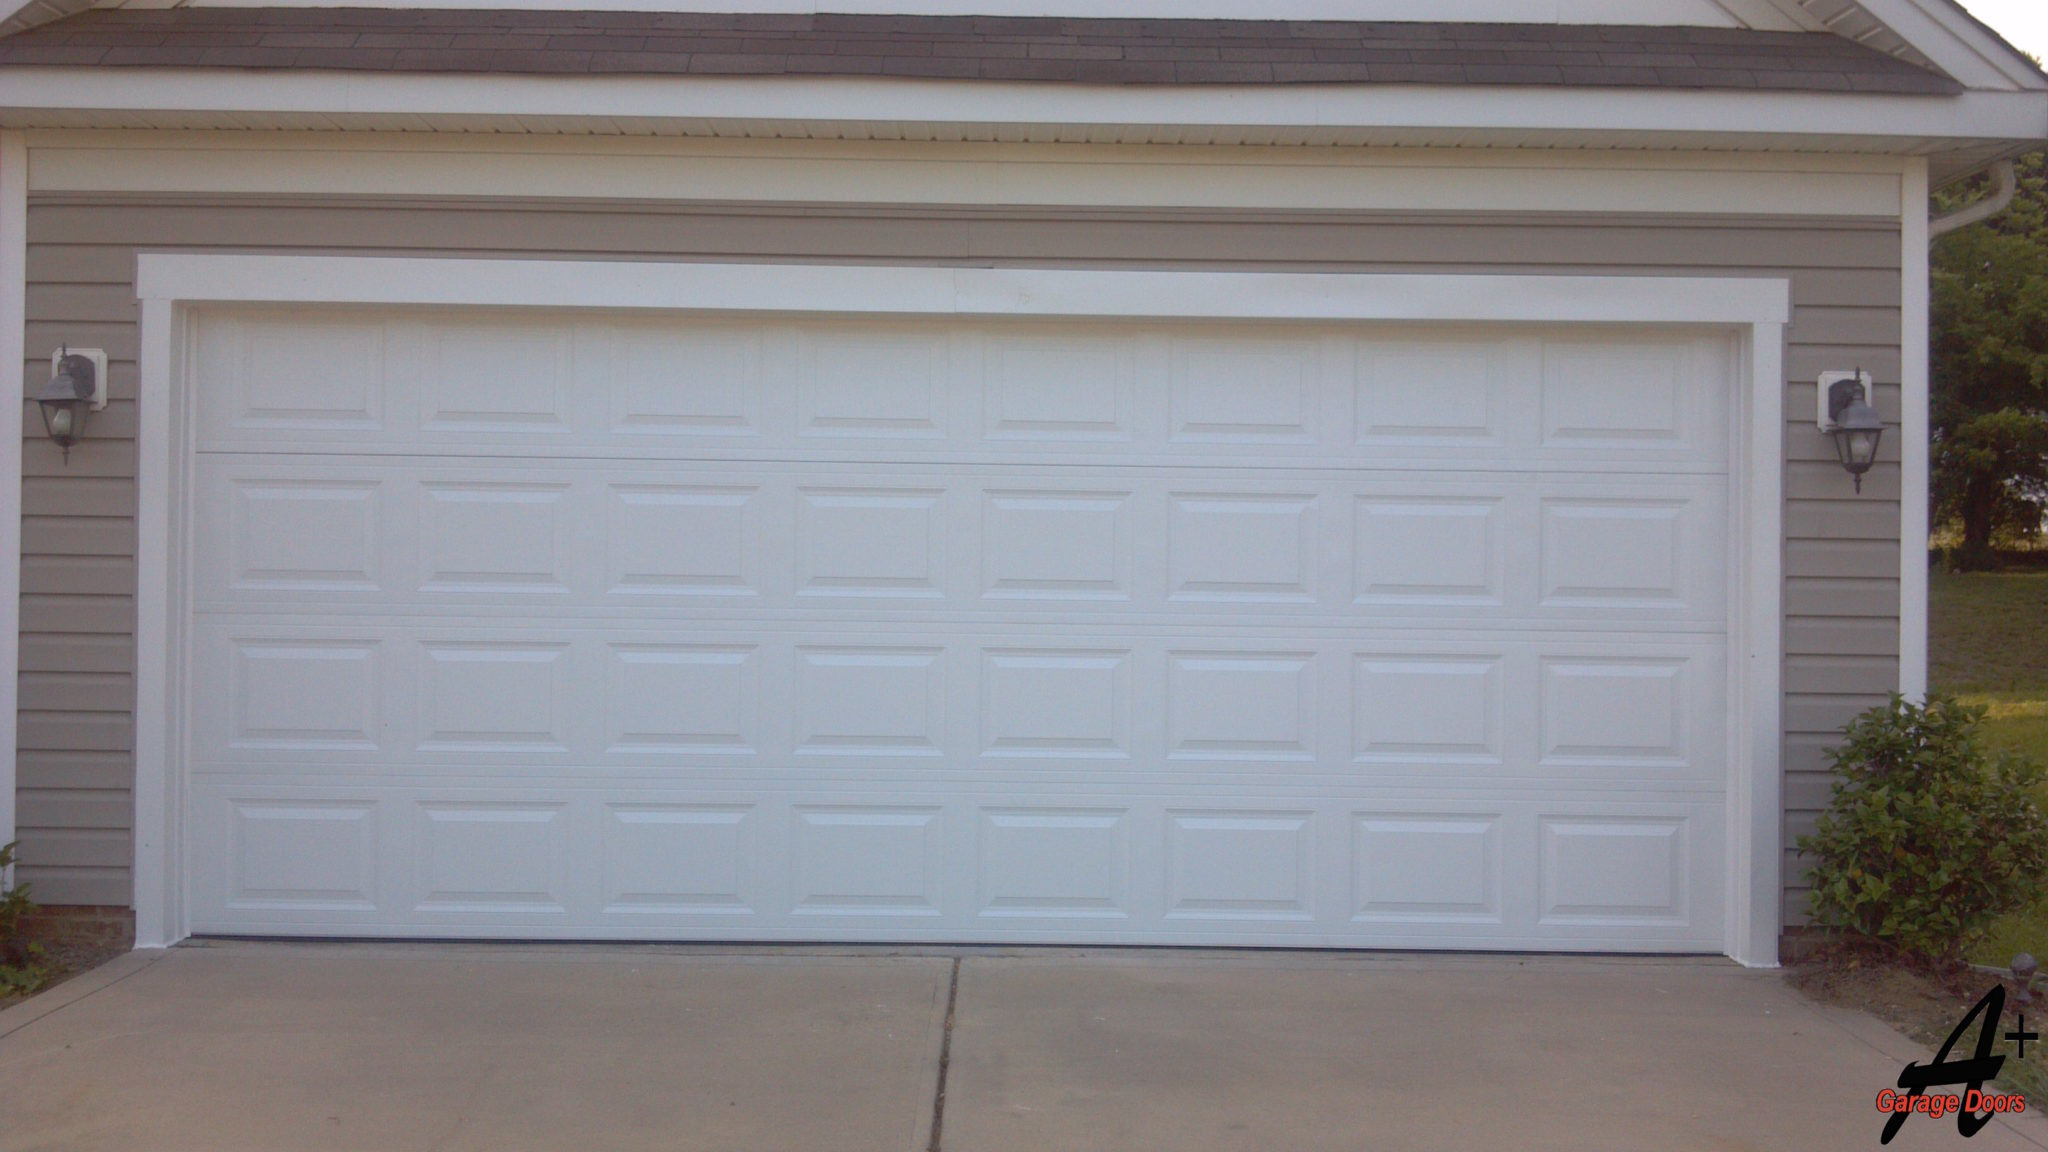 Charlotte Garage Doors combined, after